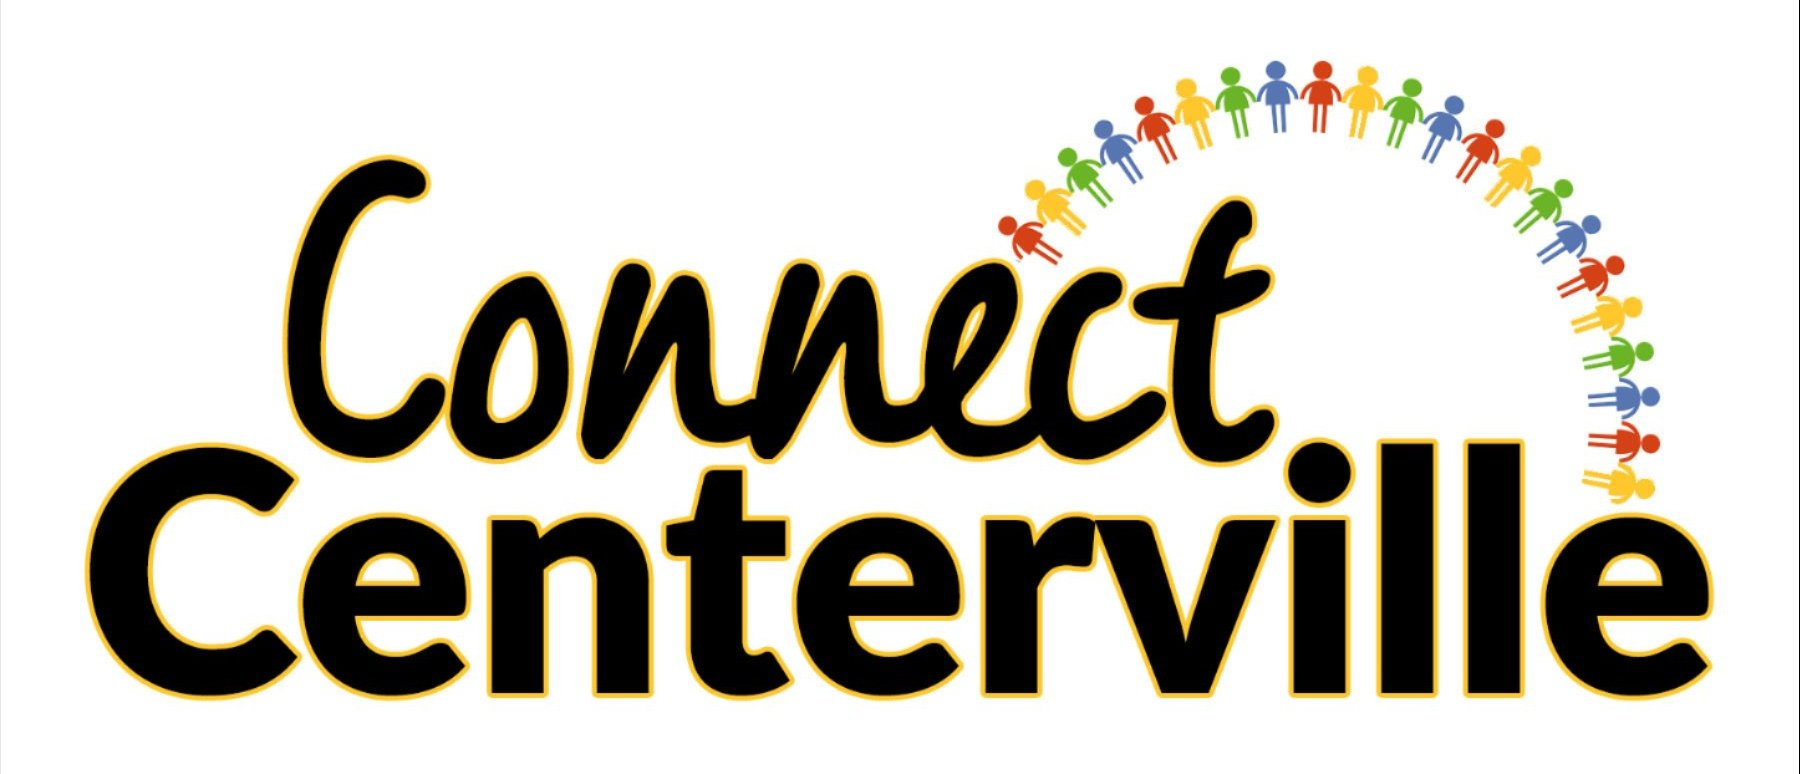 Image of Connect Centerville logo